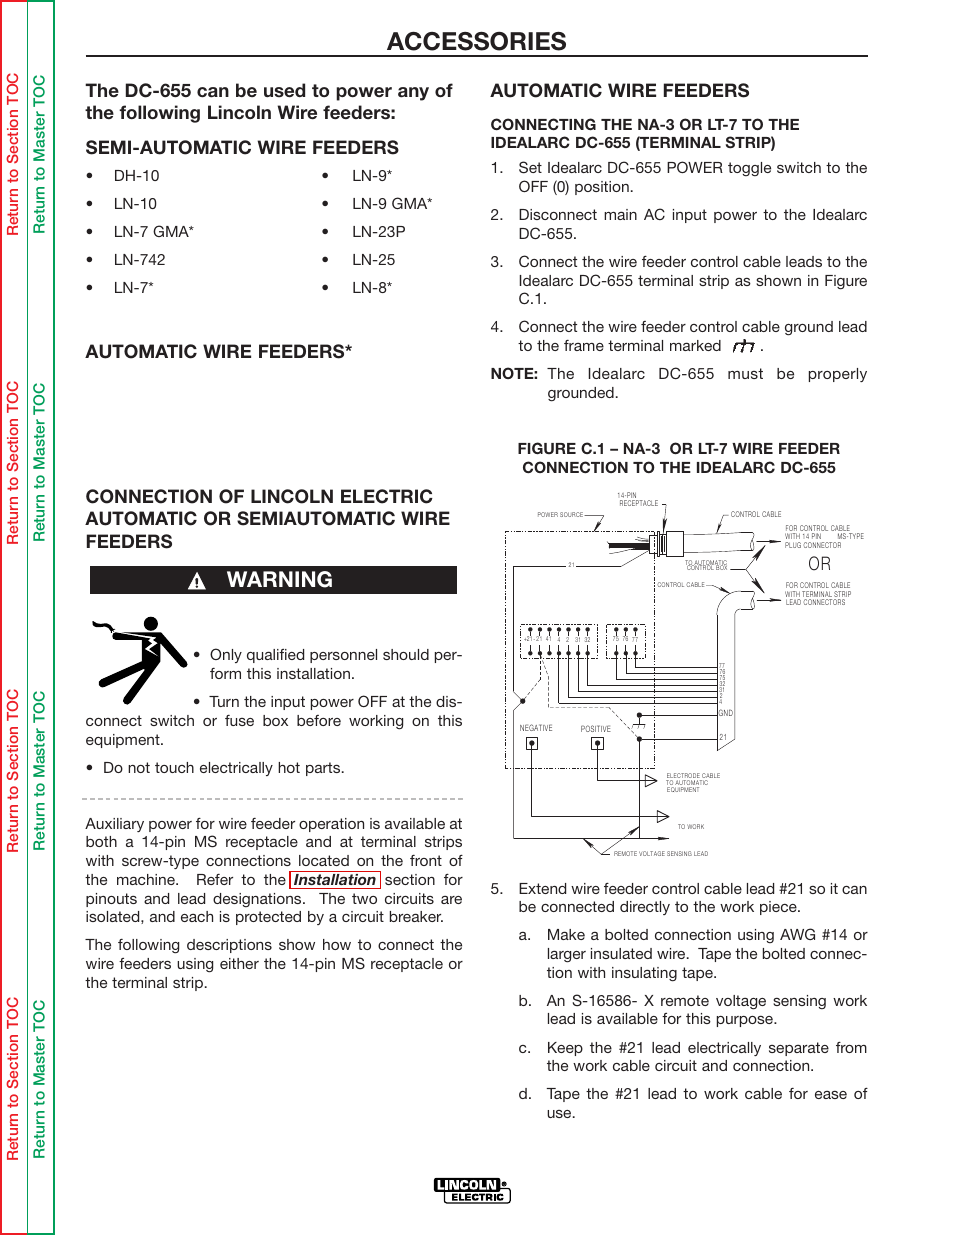 Accessories Warning Automatic Wire Feeders Lincoln Electric Fuse Box Terminal Connector Pin Idealarc Dc 655 User Manual Page 25 109